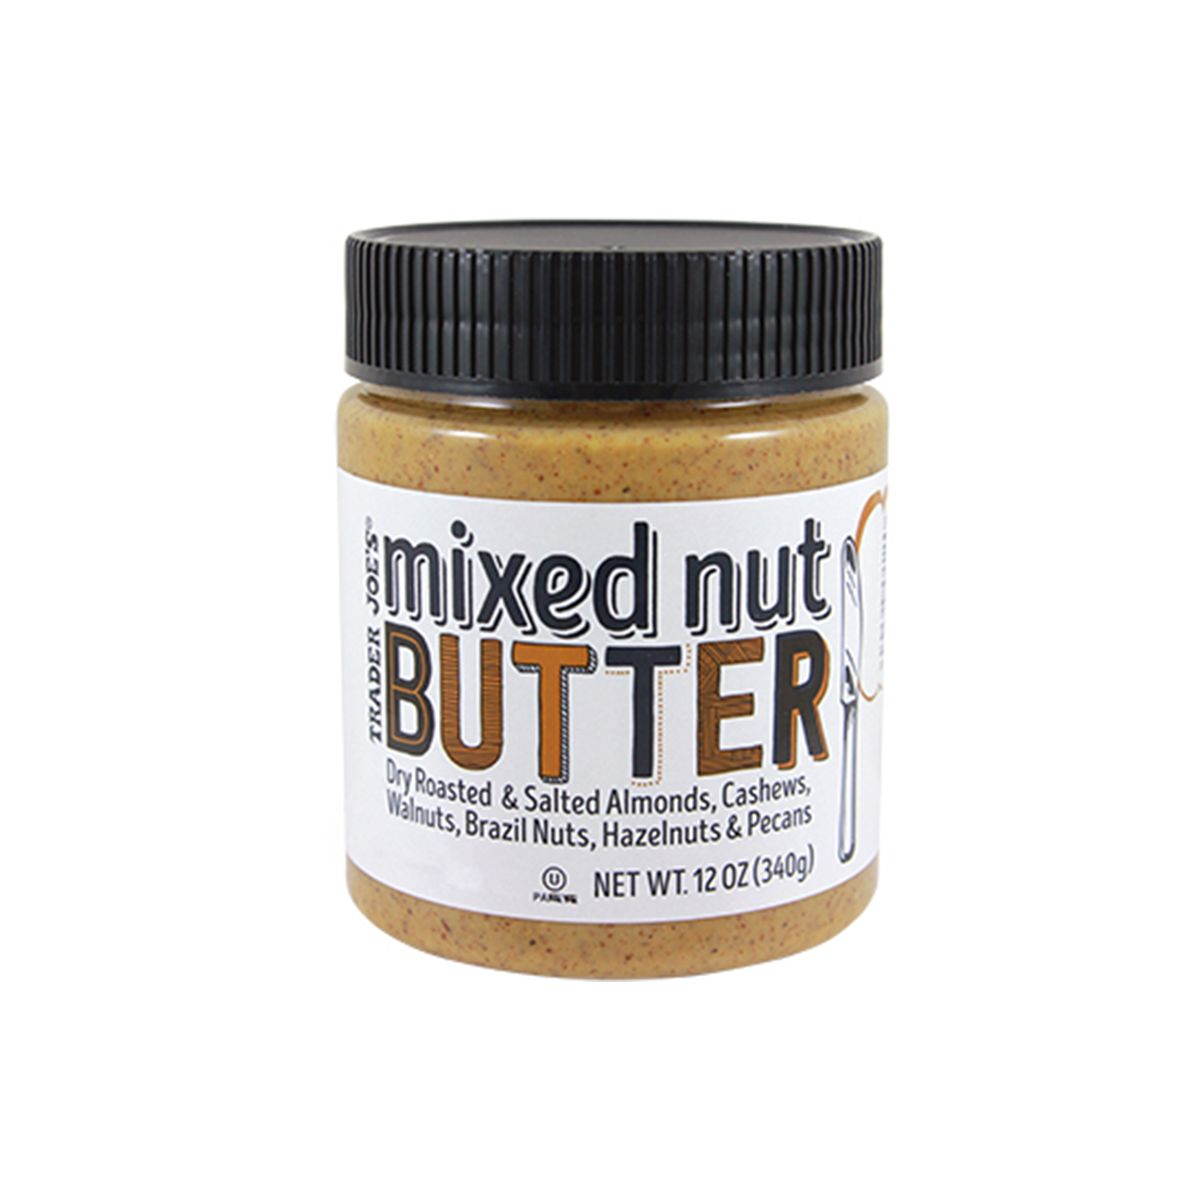 Mixed Nut Butter, $6 for 12 ounces